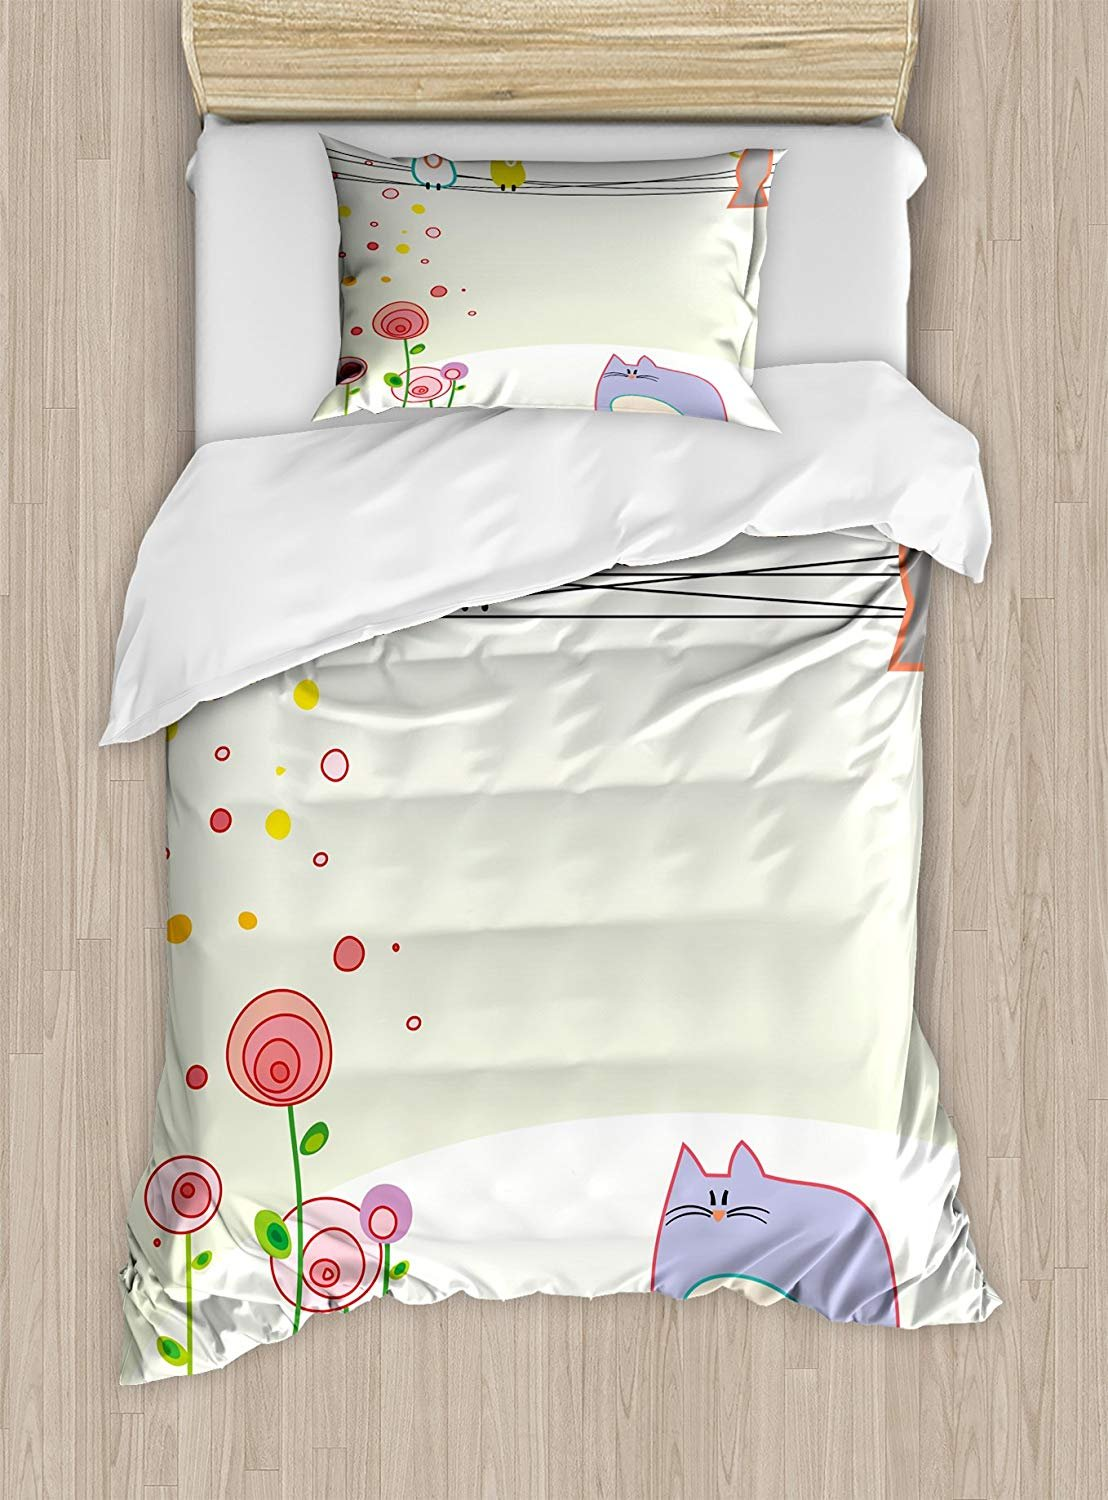 Twin XL Extra Long Bedding Set,Toddler Duvet Cover Set,Cute Childrens Drawing Style Bird and Cat Figures with Flourishing Spring Flowers,Cosy House Collection 4 Piece Bedding Setss